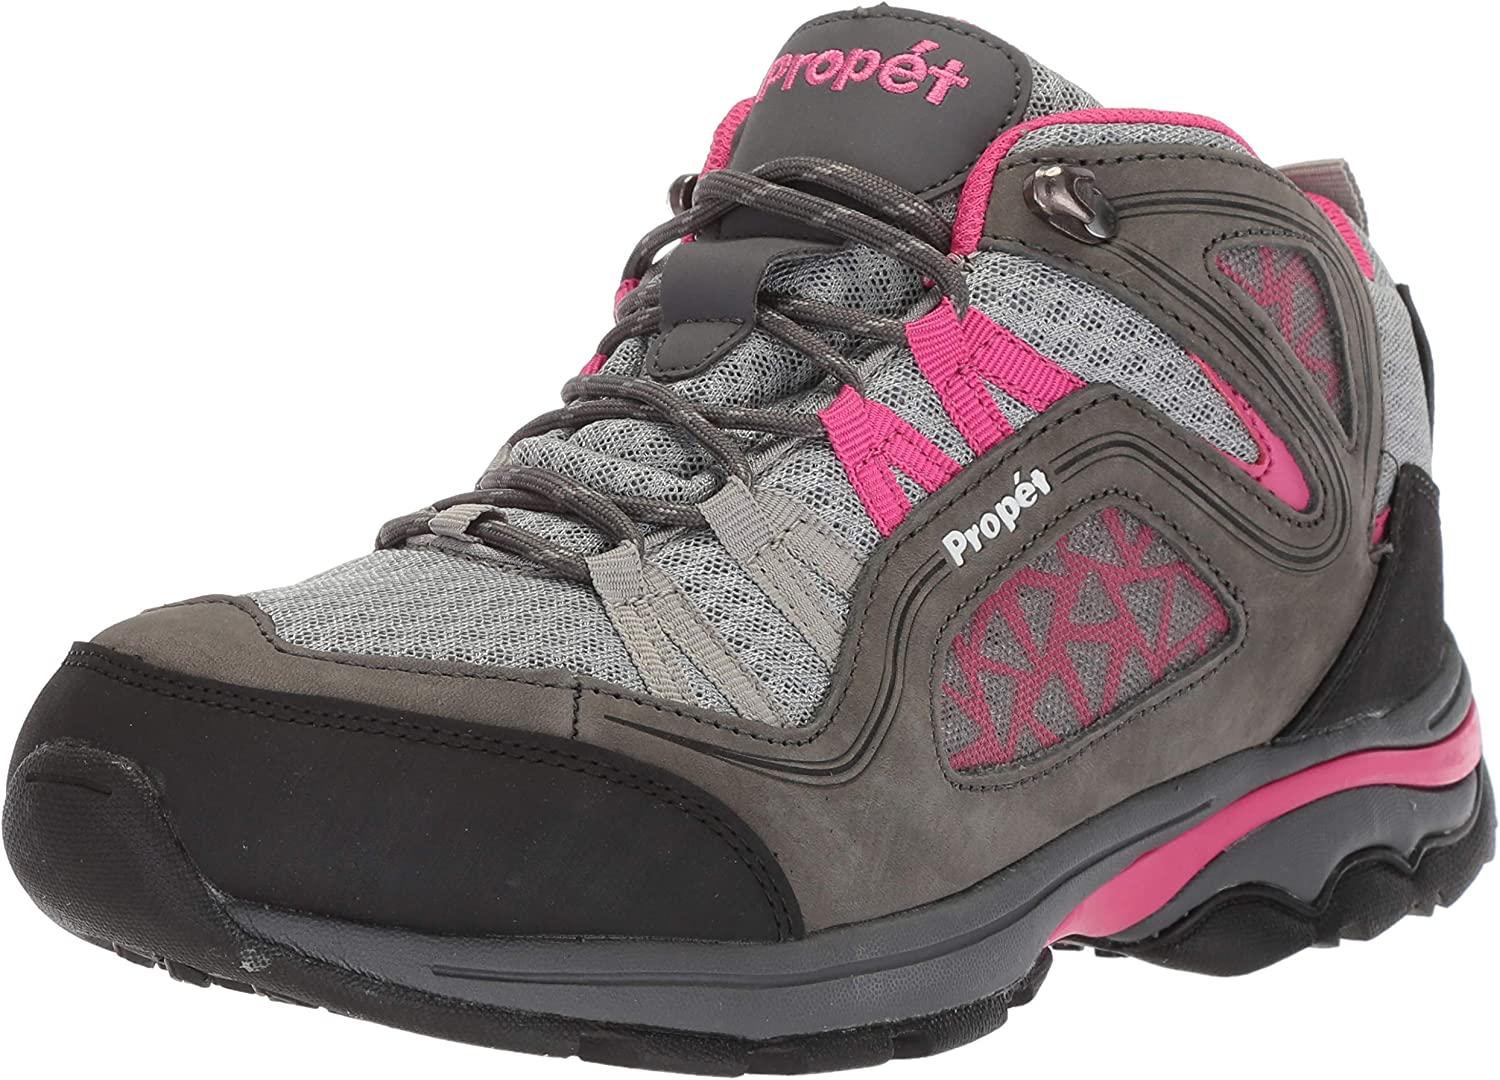 Prop t Women's Peak Hiking Boot